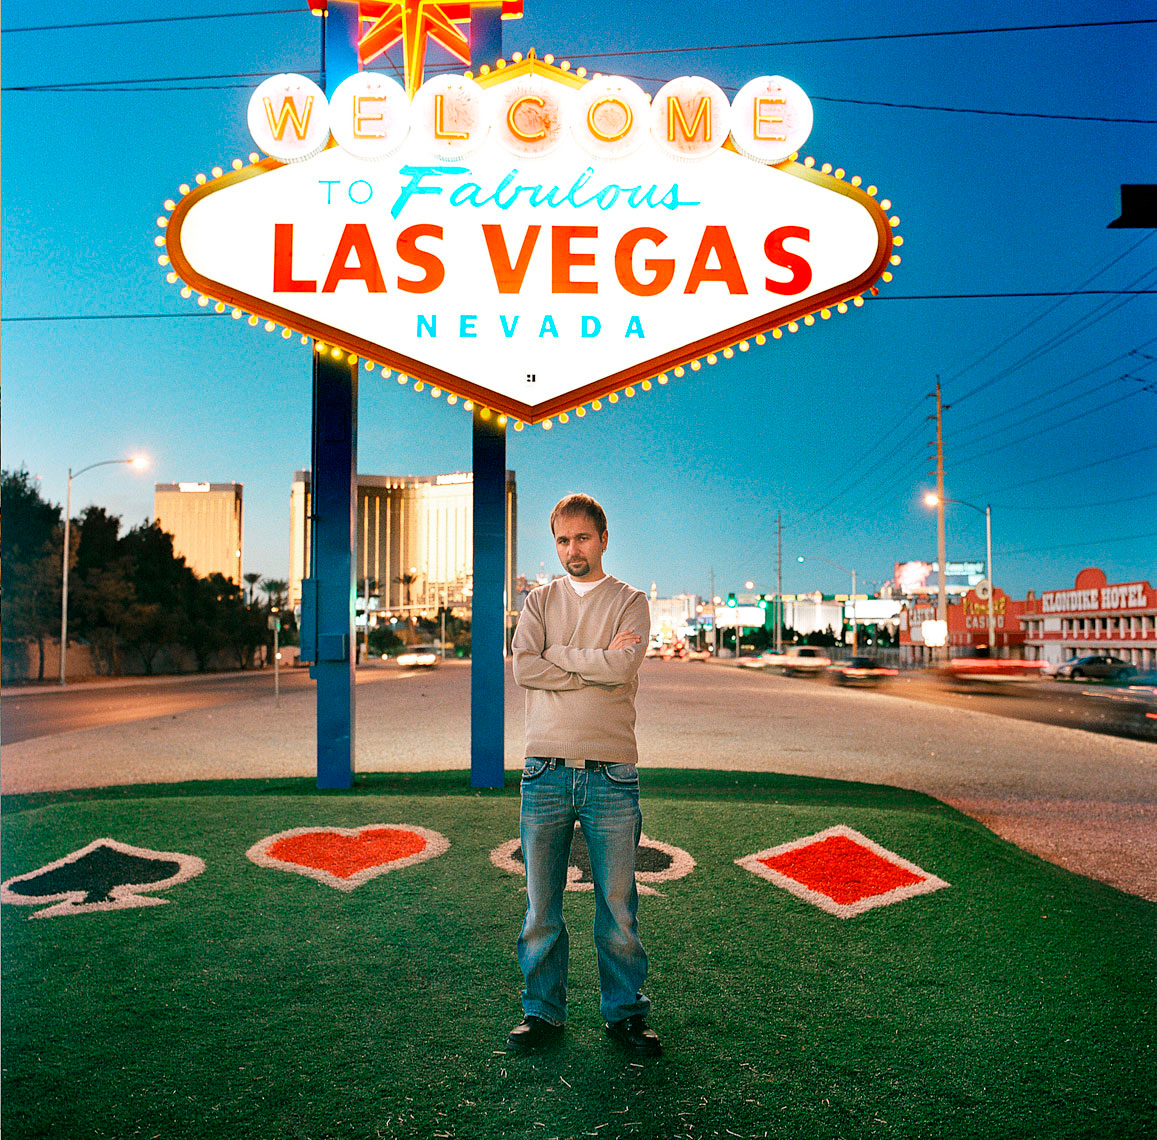 daniel negreano poker las vegas  by PETER LueDERS